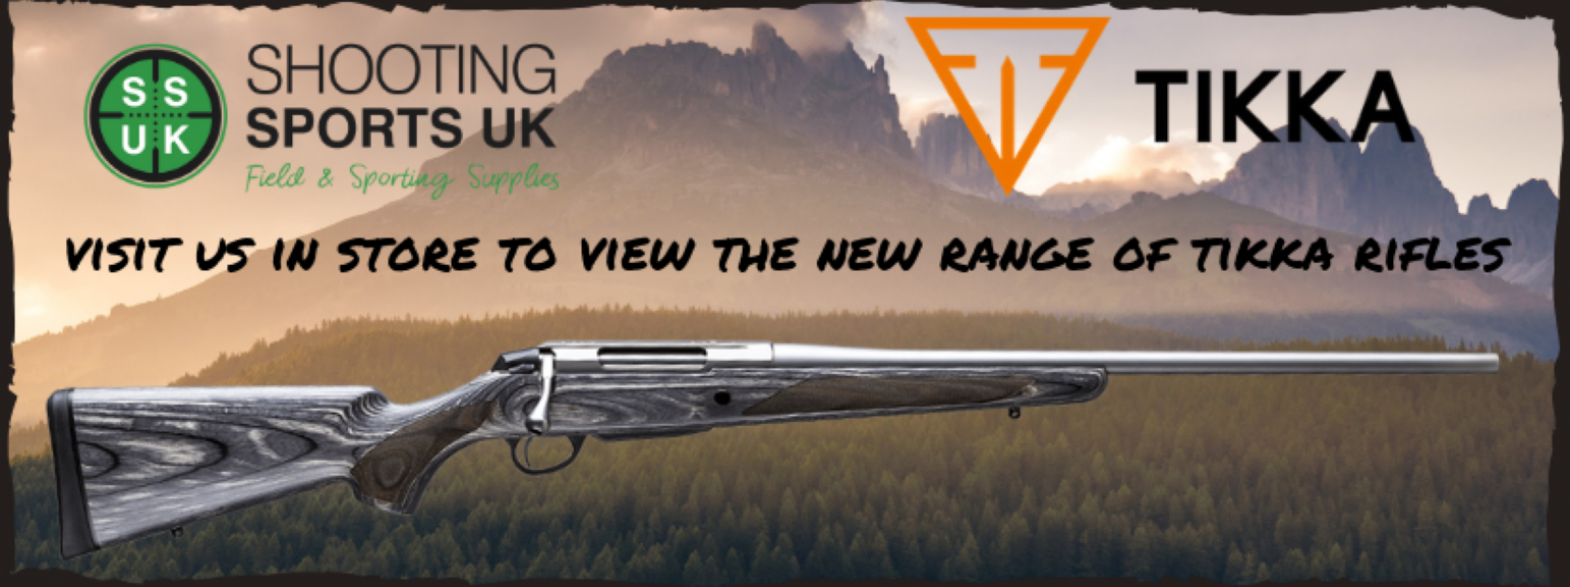 Shooting Sports UK | Field & Sporting Supplies